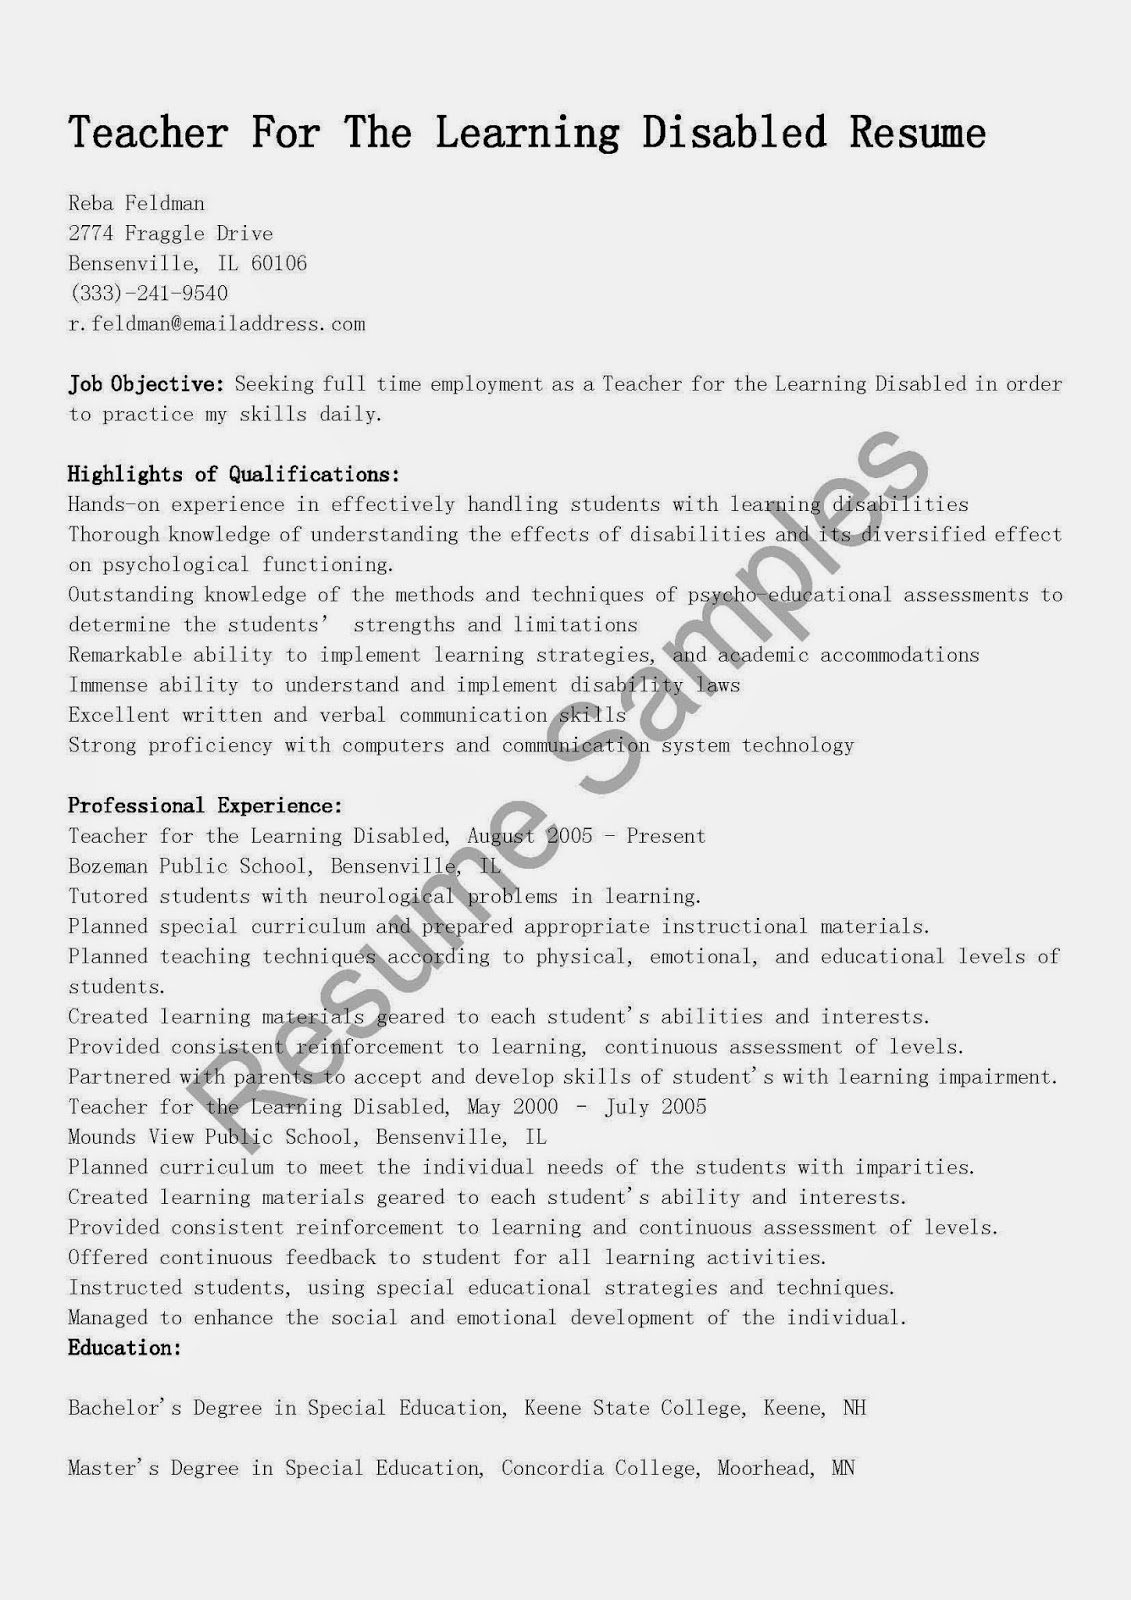 Resume Samples Teacher For The Learning Disabled Resume